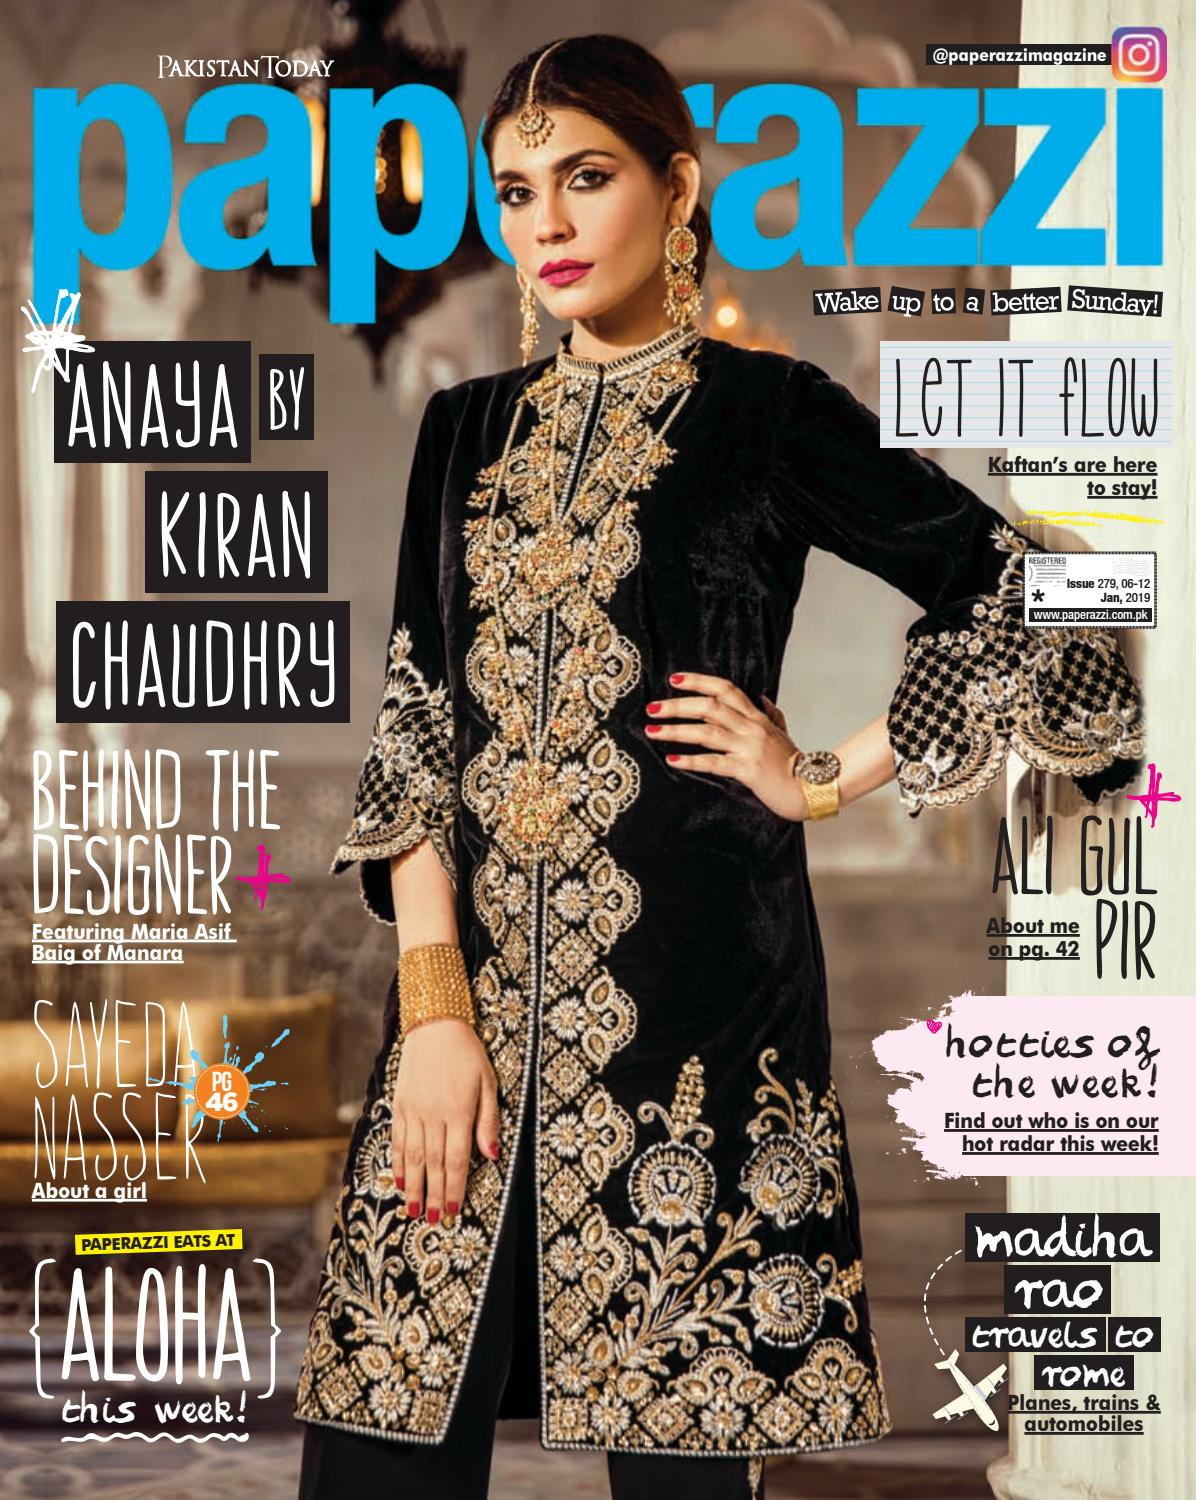 962c6dfd775c Pakistan Today Paperazzi Issue 279 Jan 06th, 2019 by Pakistan Today - issuu